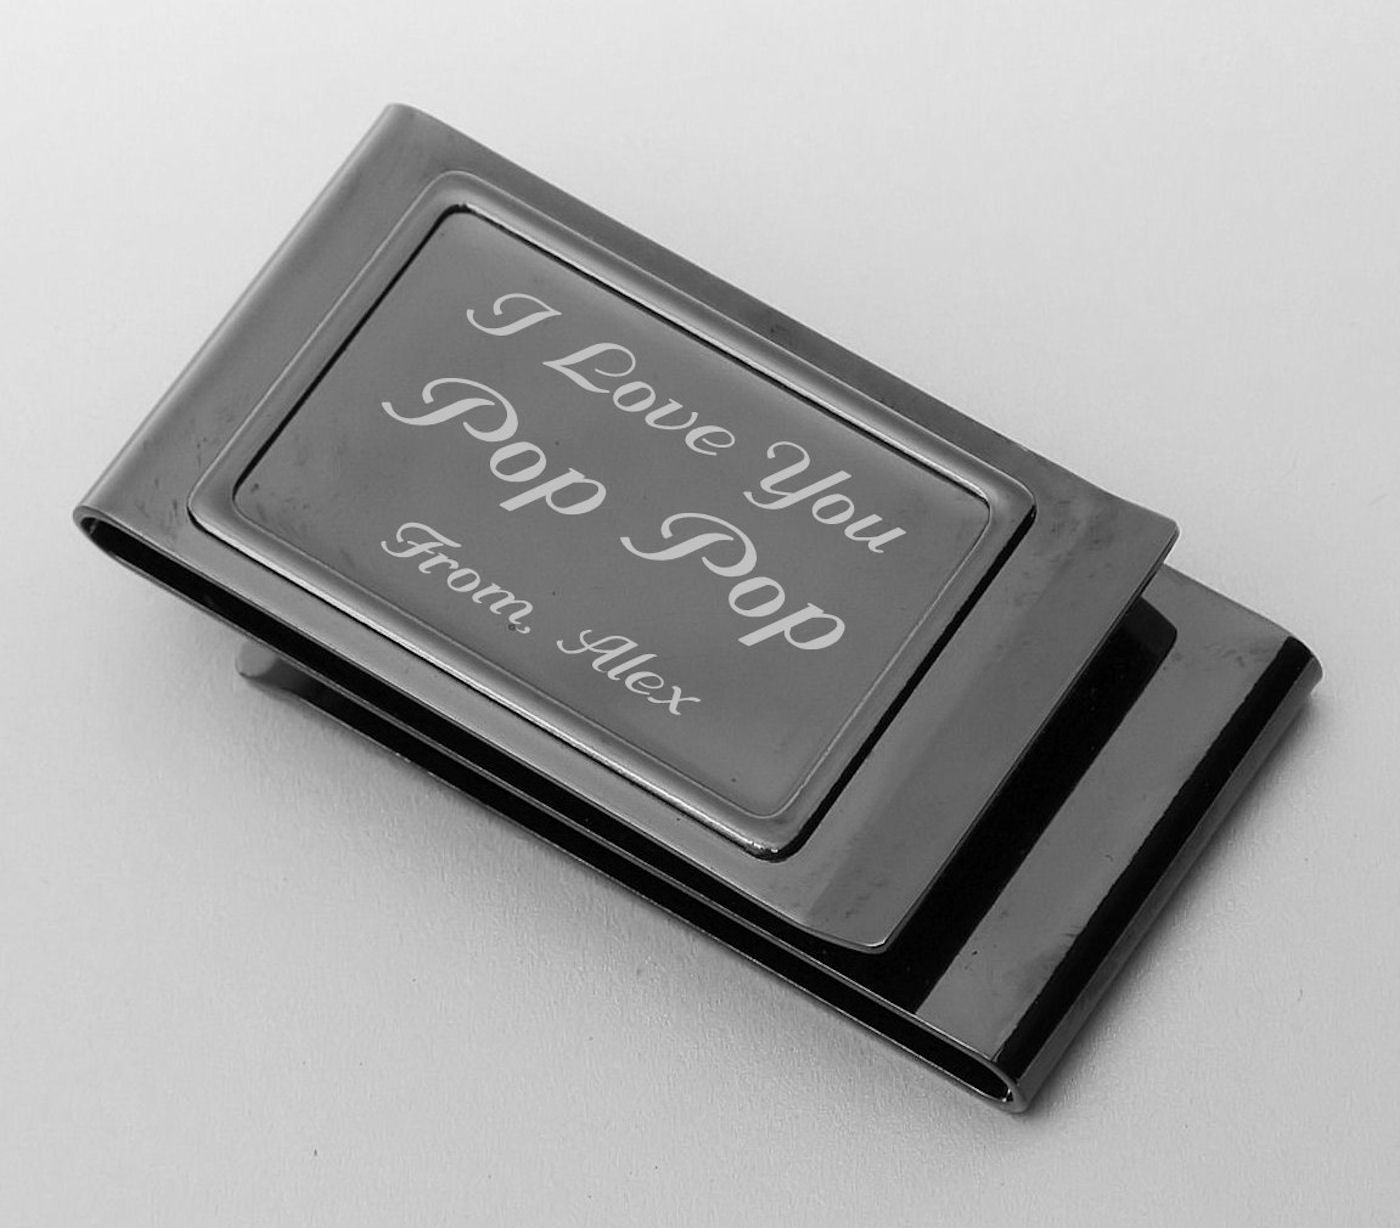 double sided money clip credit card holder - Money Clip Credit Card Holder